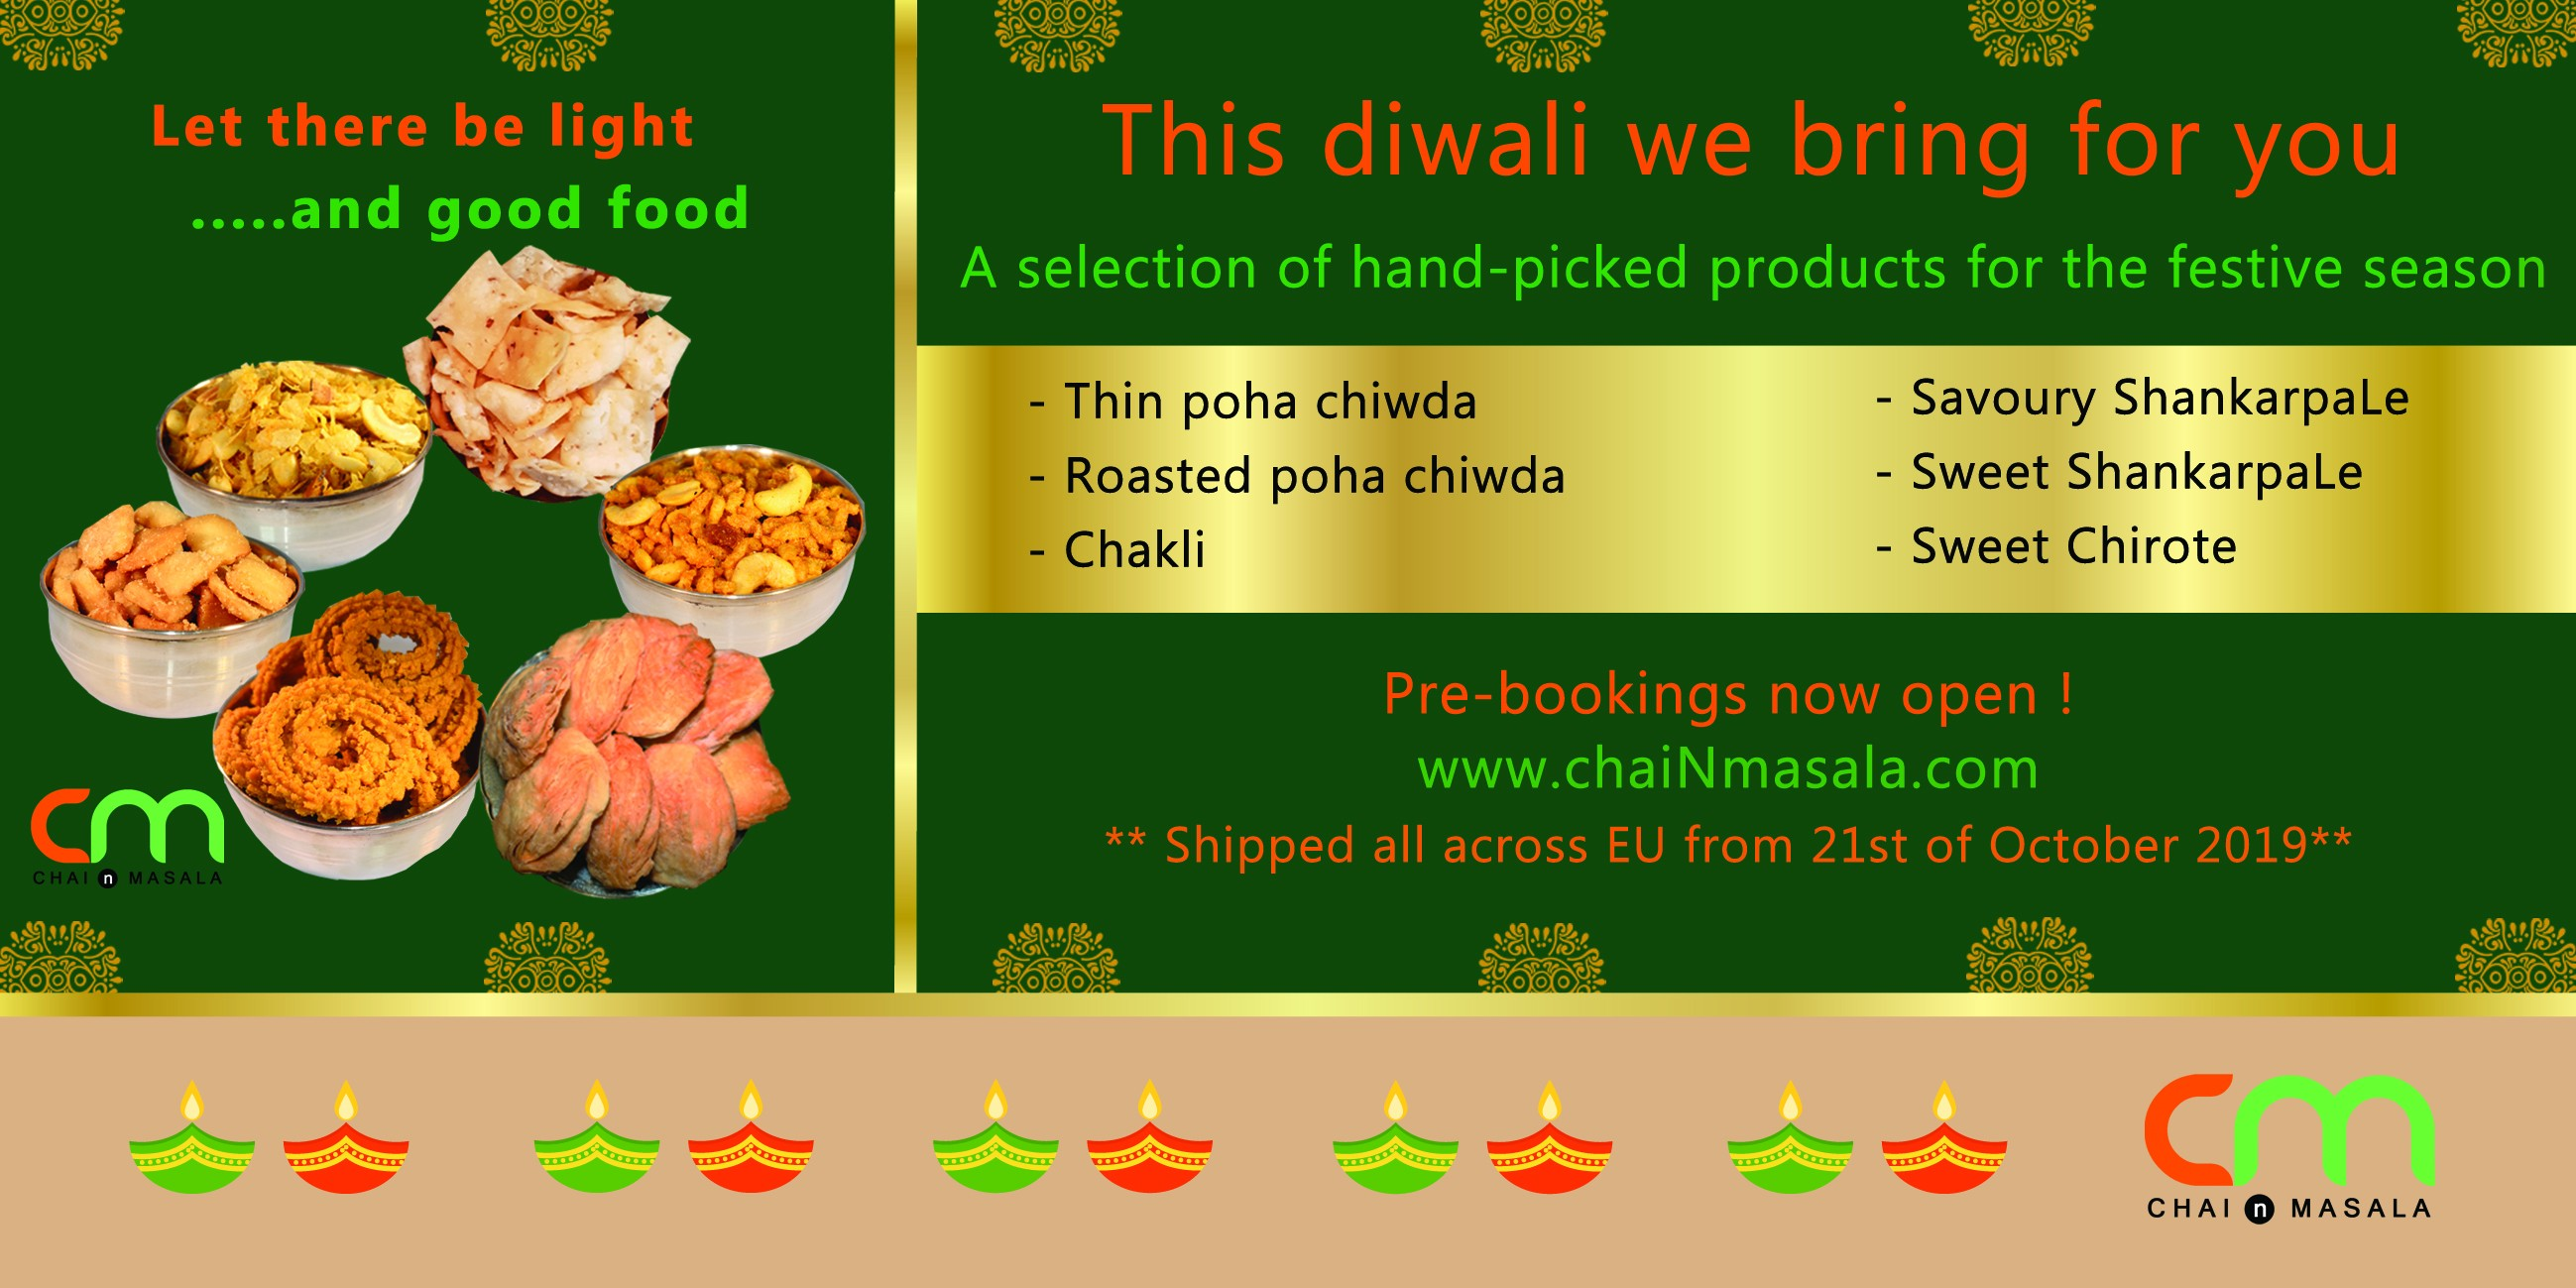 Diwali Products